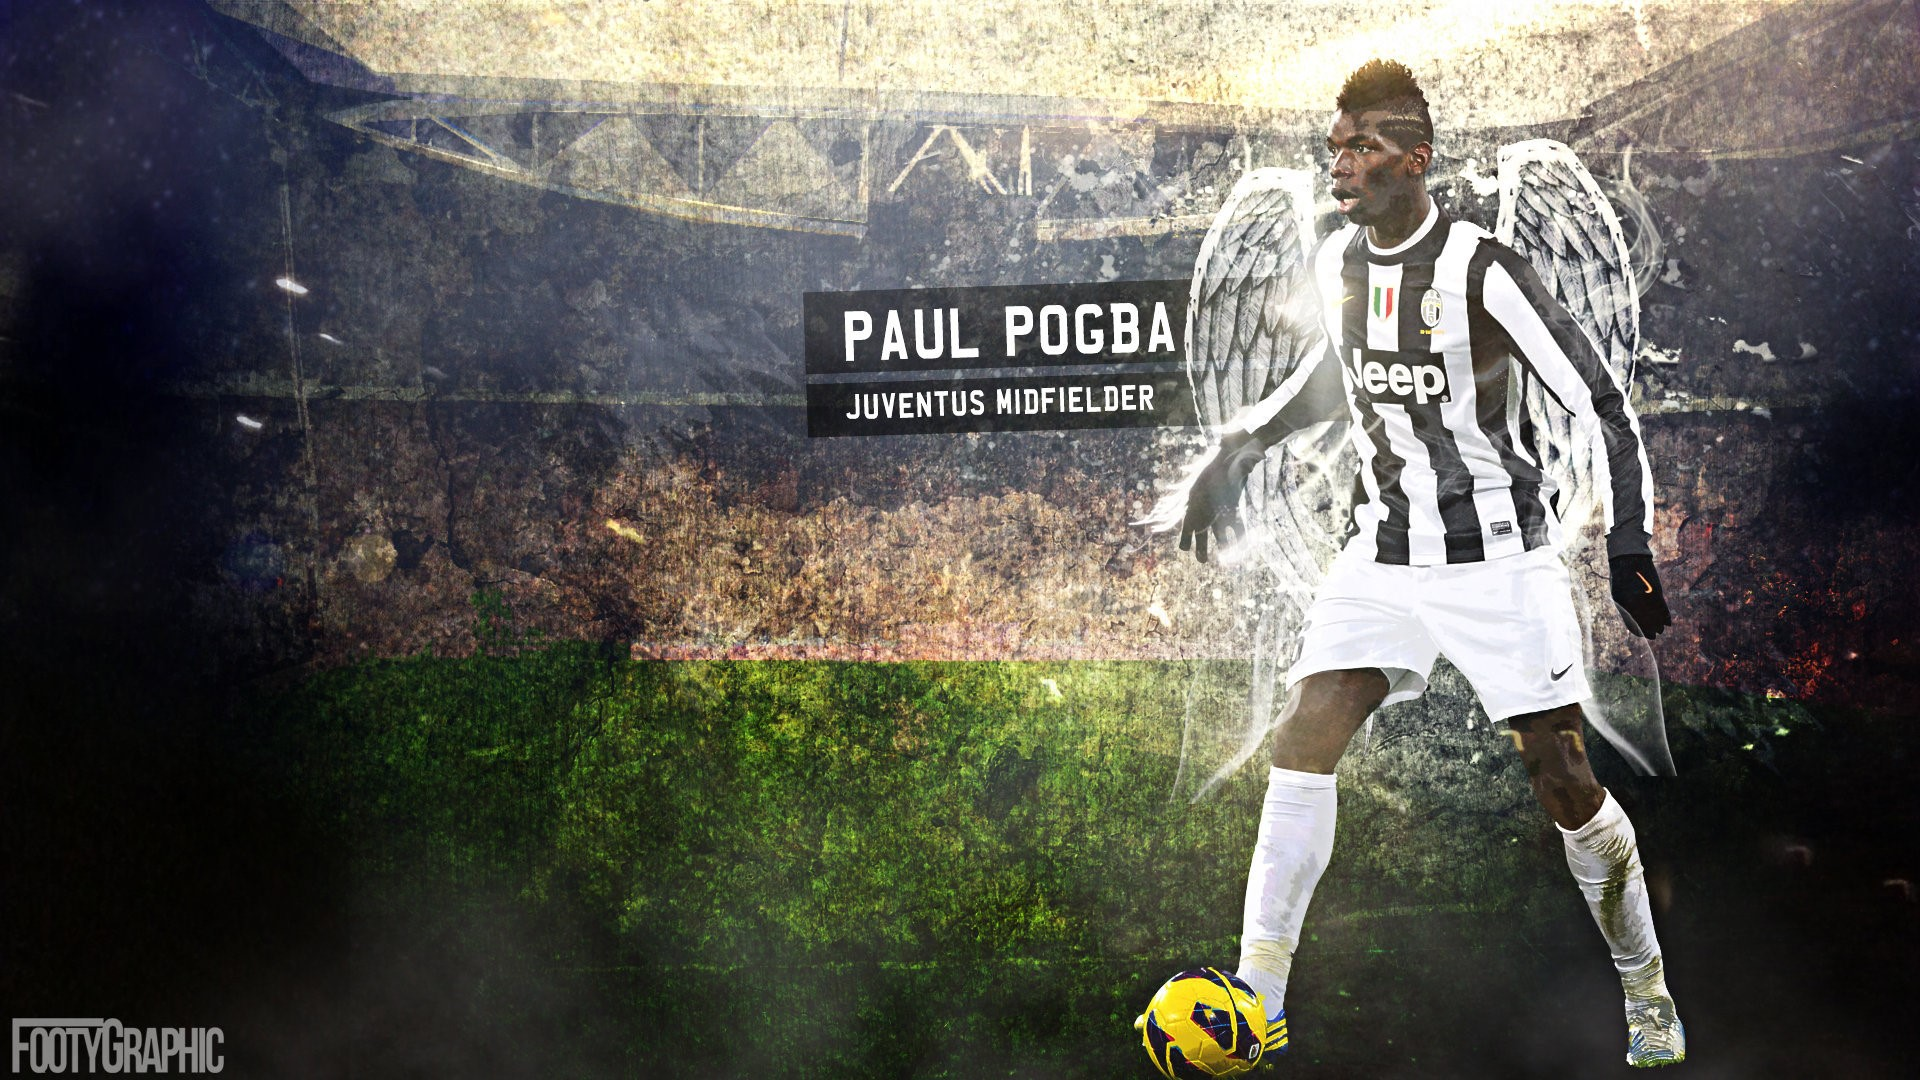 Pictures of Paul Pogba